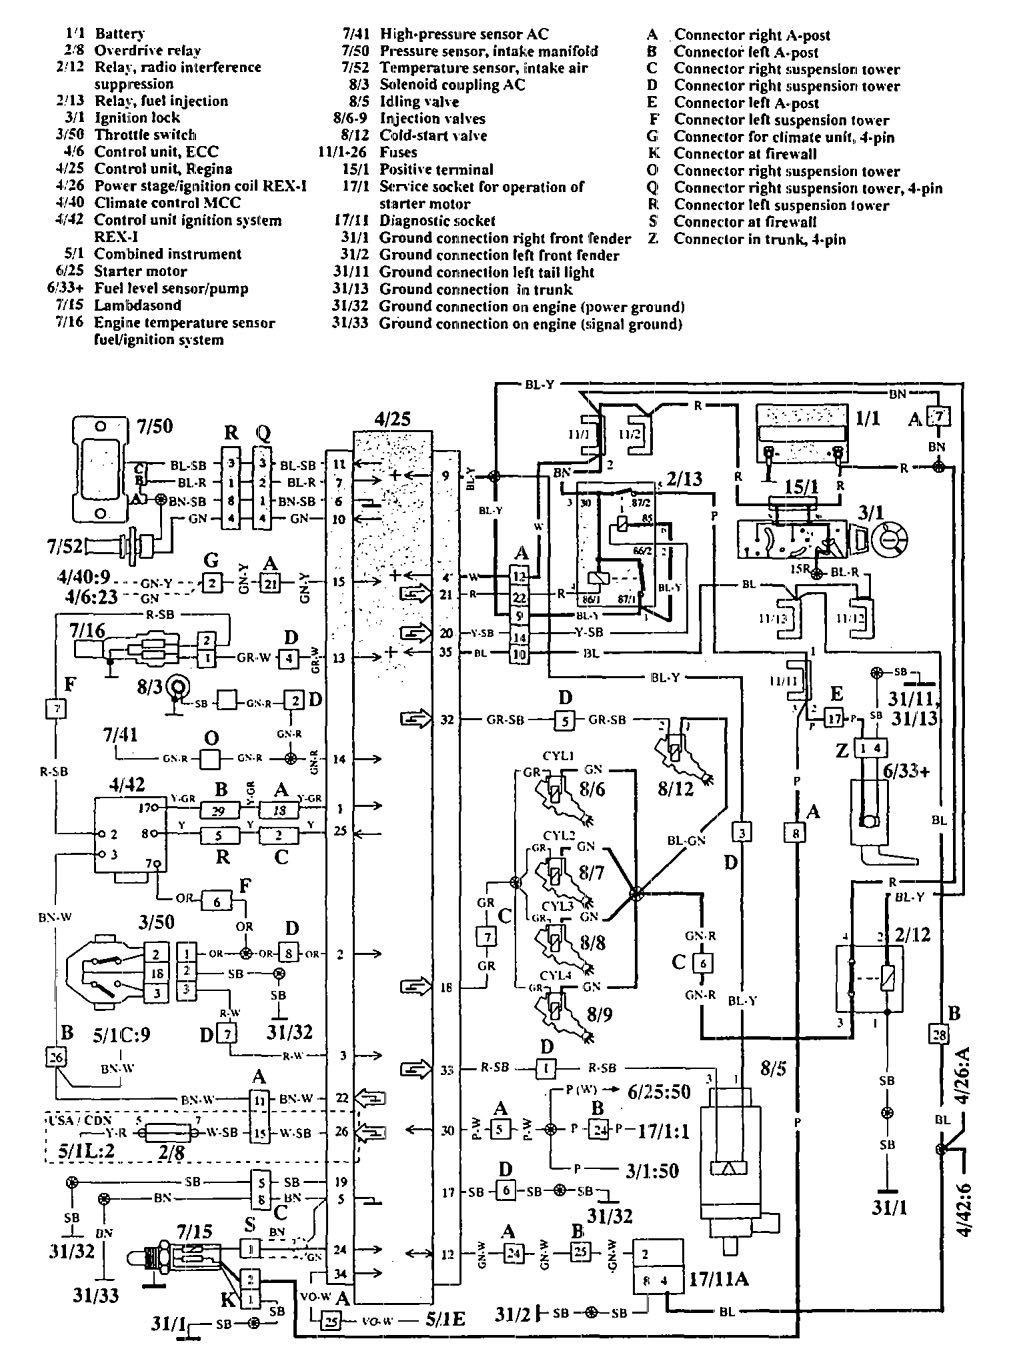 Wiring Diagram Volvo 940 Radio : Volvo wiring diagram  images